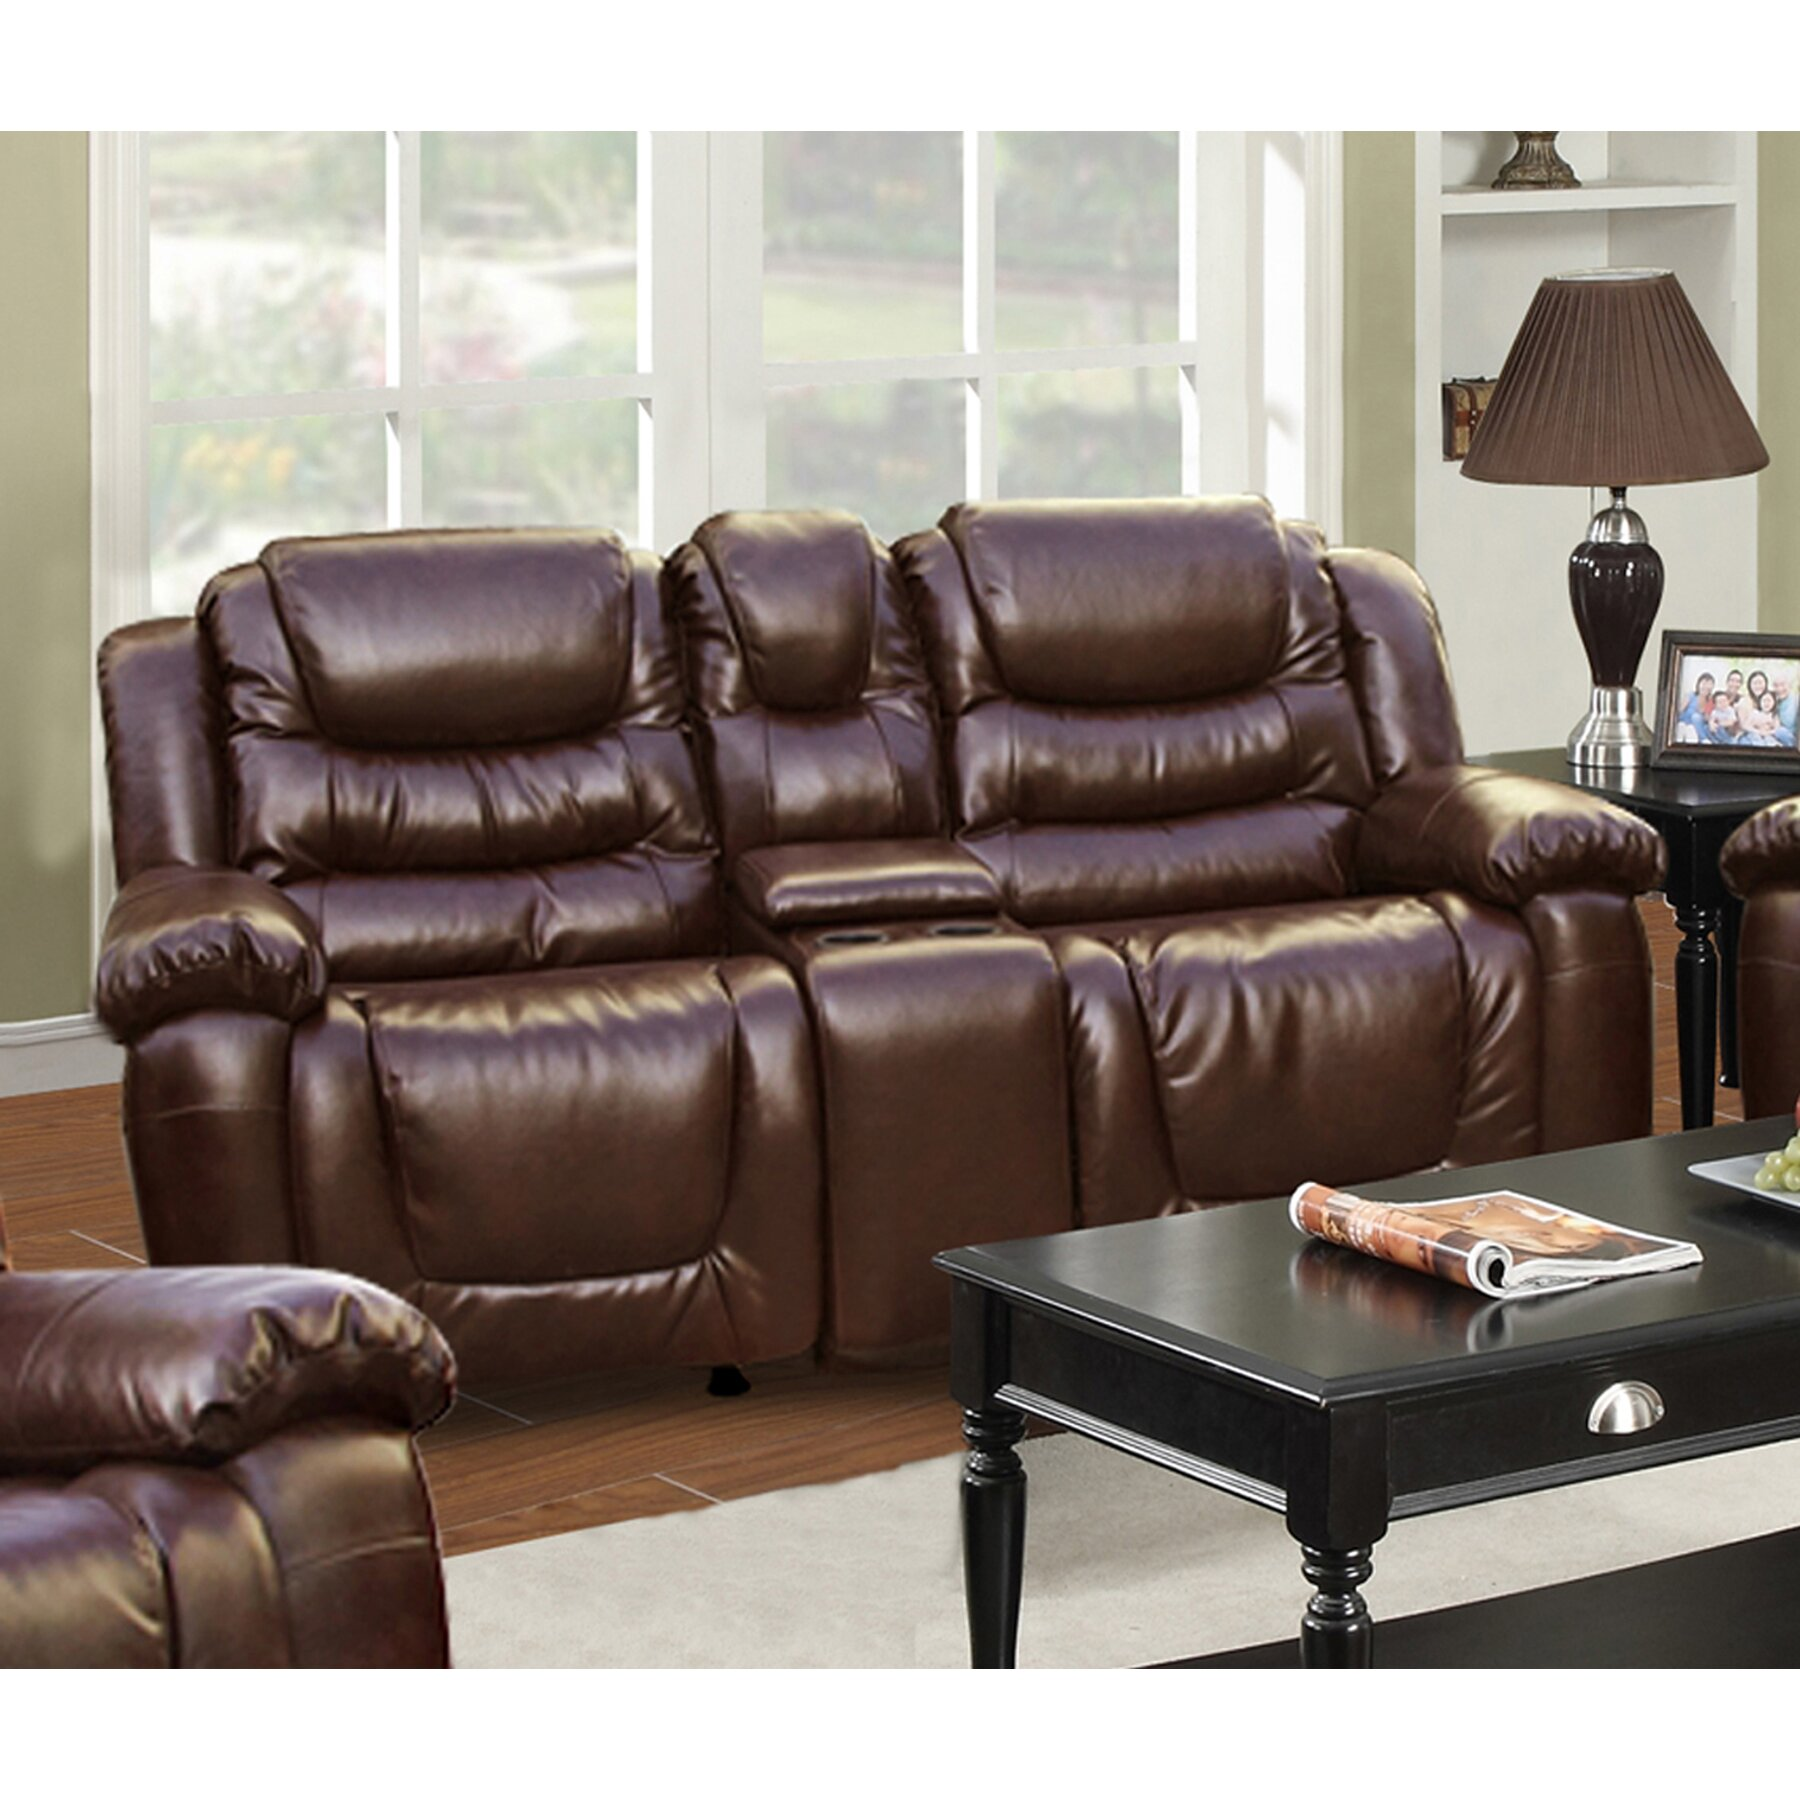 Beverly Fine Furniture Ottawa Rocking And Reclining Loveseat Reviews Wayfair